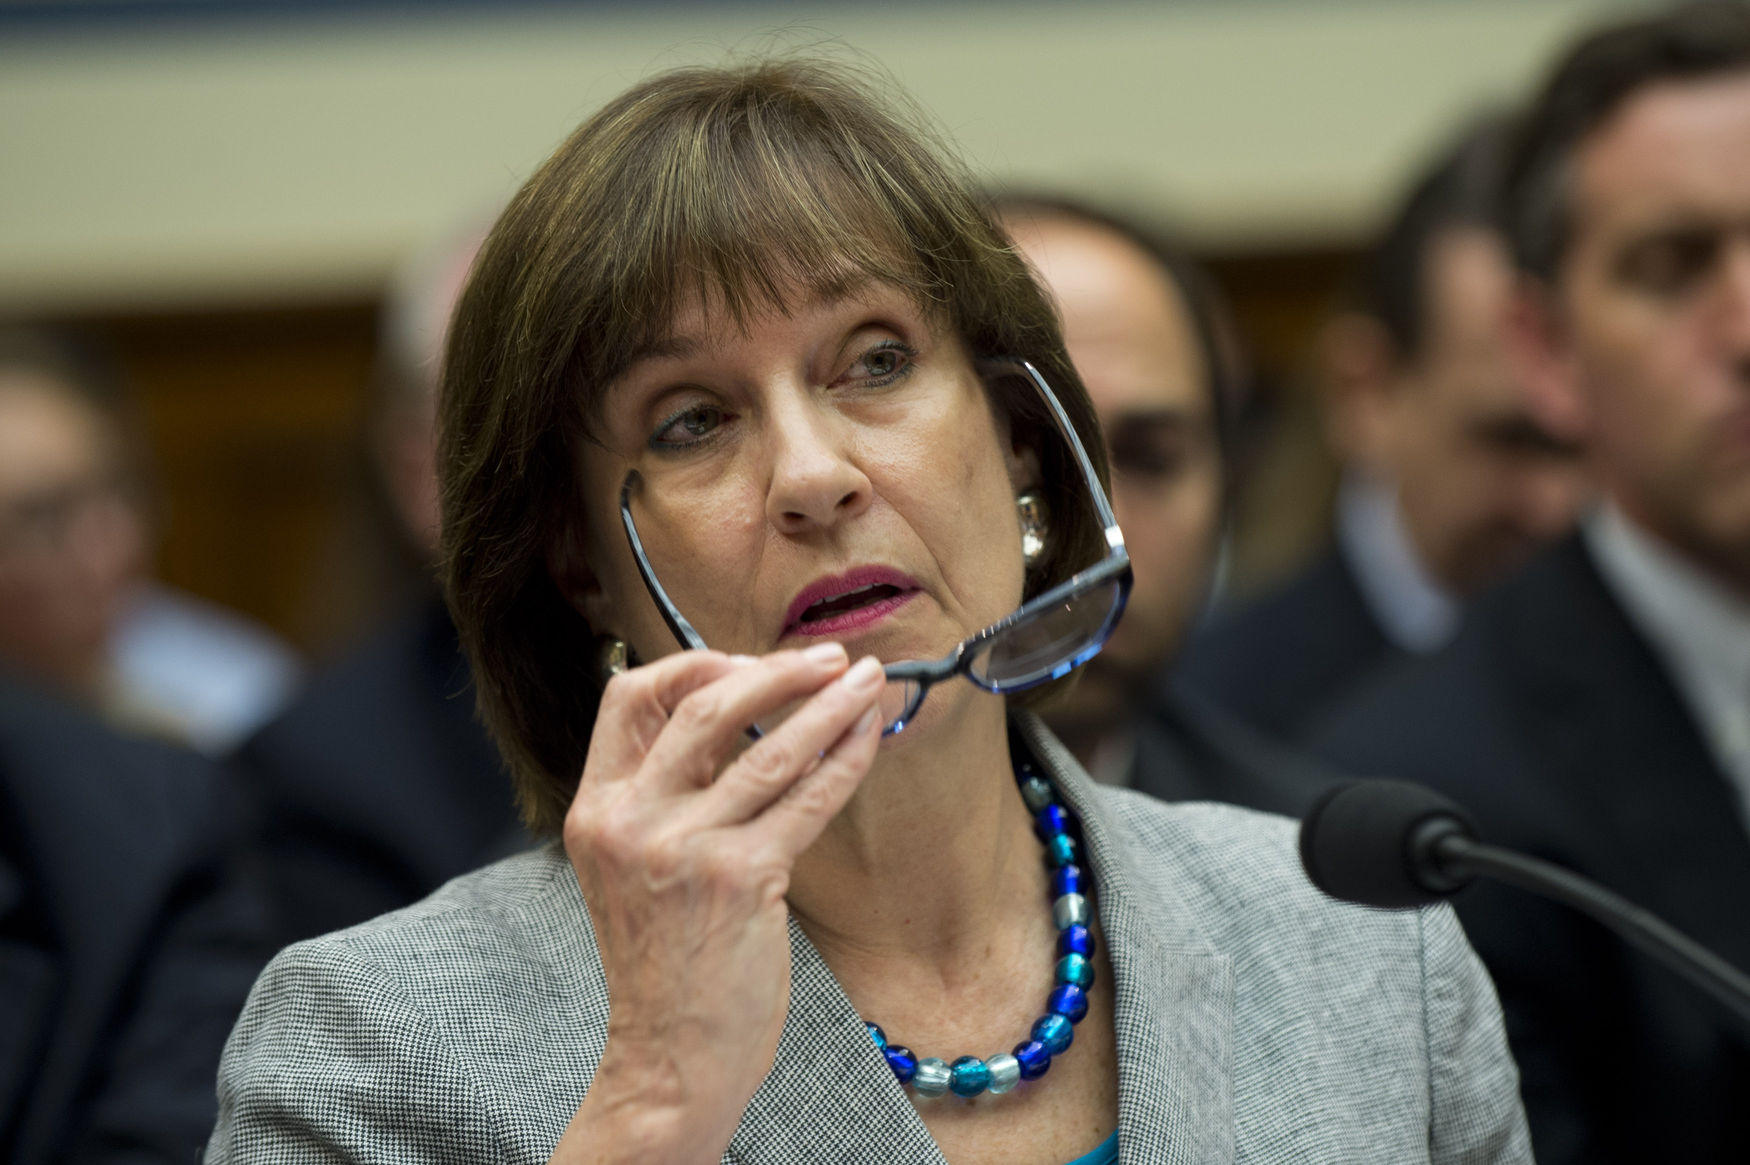 Trump's DOJ won't pursue charges against Lois Lerner, former IRS senior executive